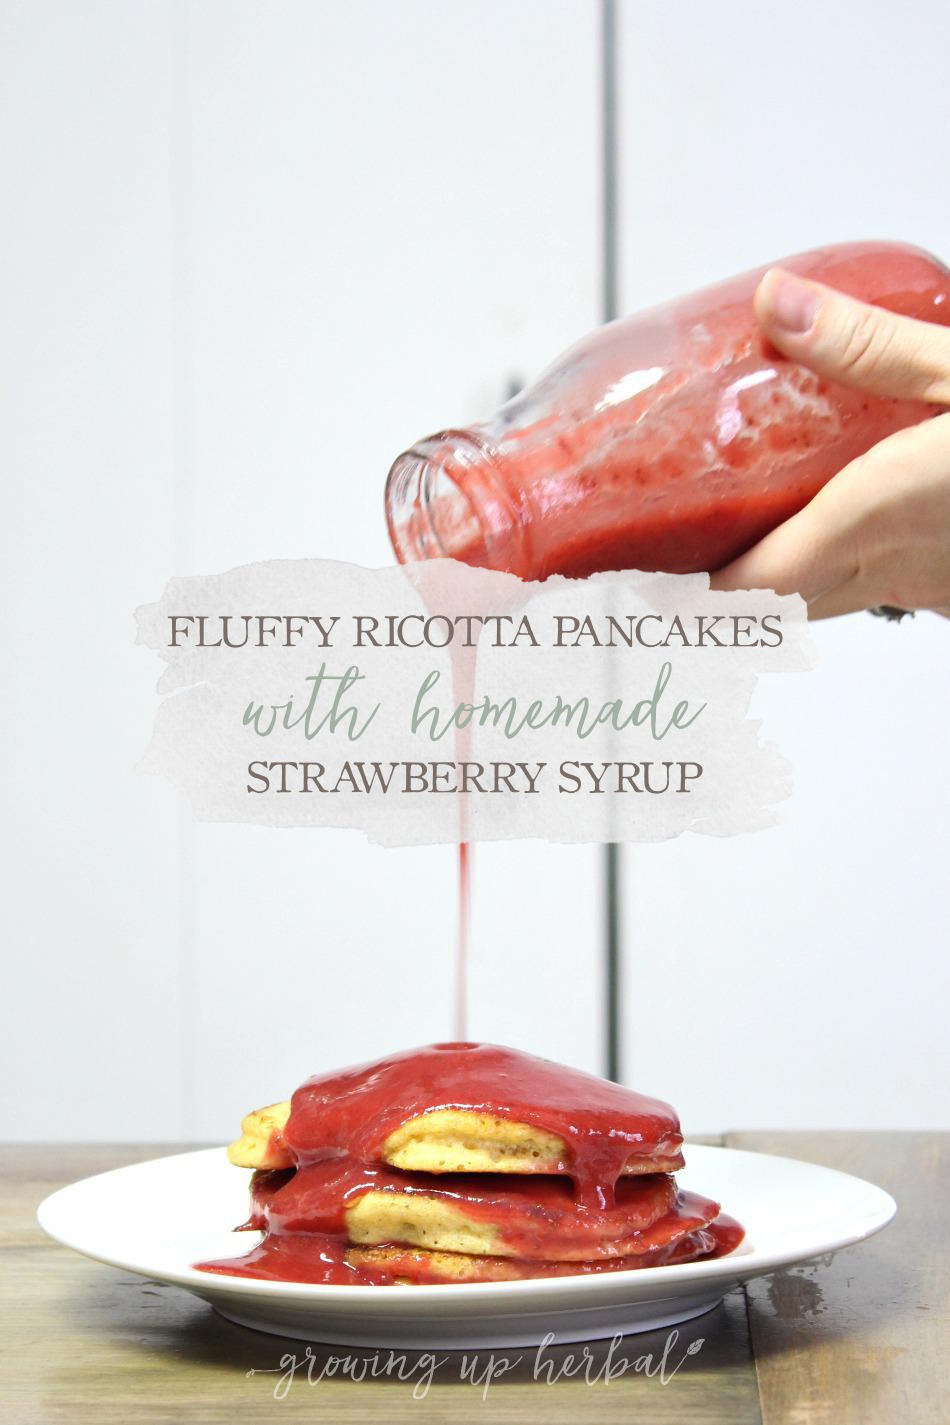 Fluffy Ricotta Pancakes With Homemade Strawberry Syrup | Growing Up Herbal | Wanna know what our favorite pancake and homemade syrup recipes are? Get them in today's post, and pin it to your Pinterest boards for safe keeping!